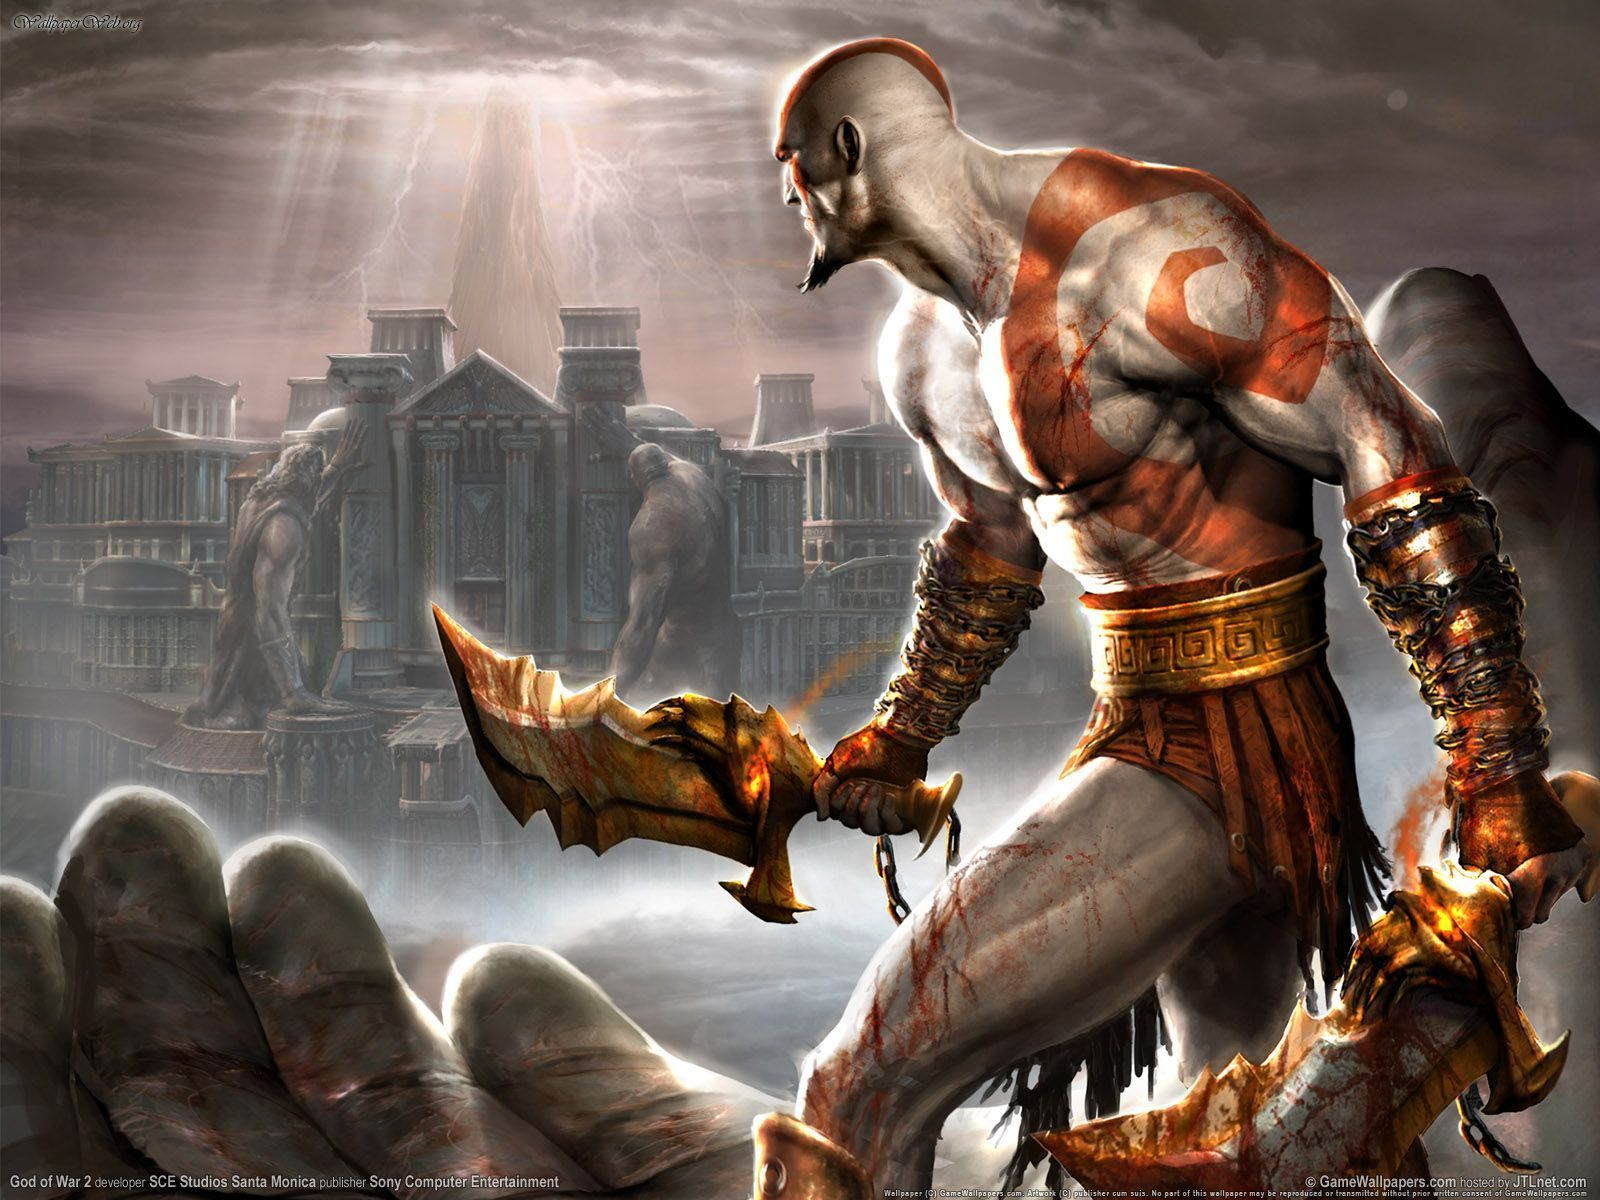 Patrick Melton And Marcus Dunstan To Rewrite GOD OF WAR